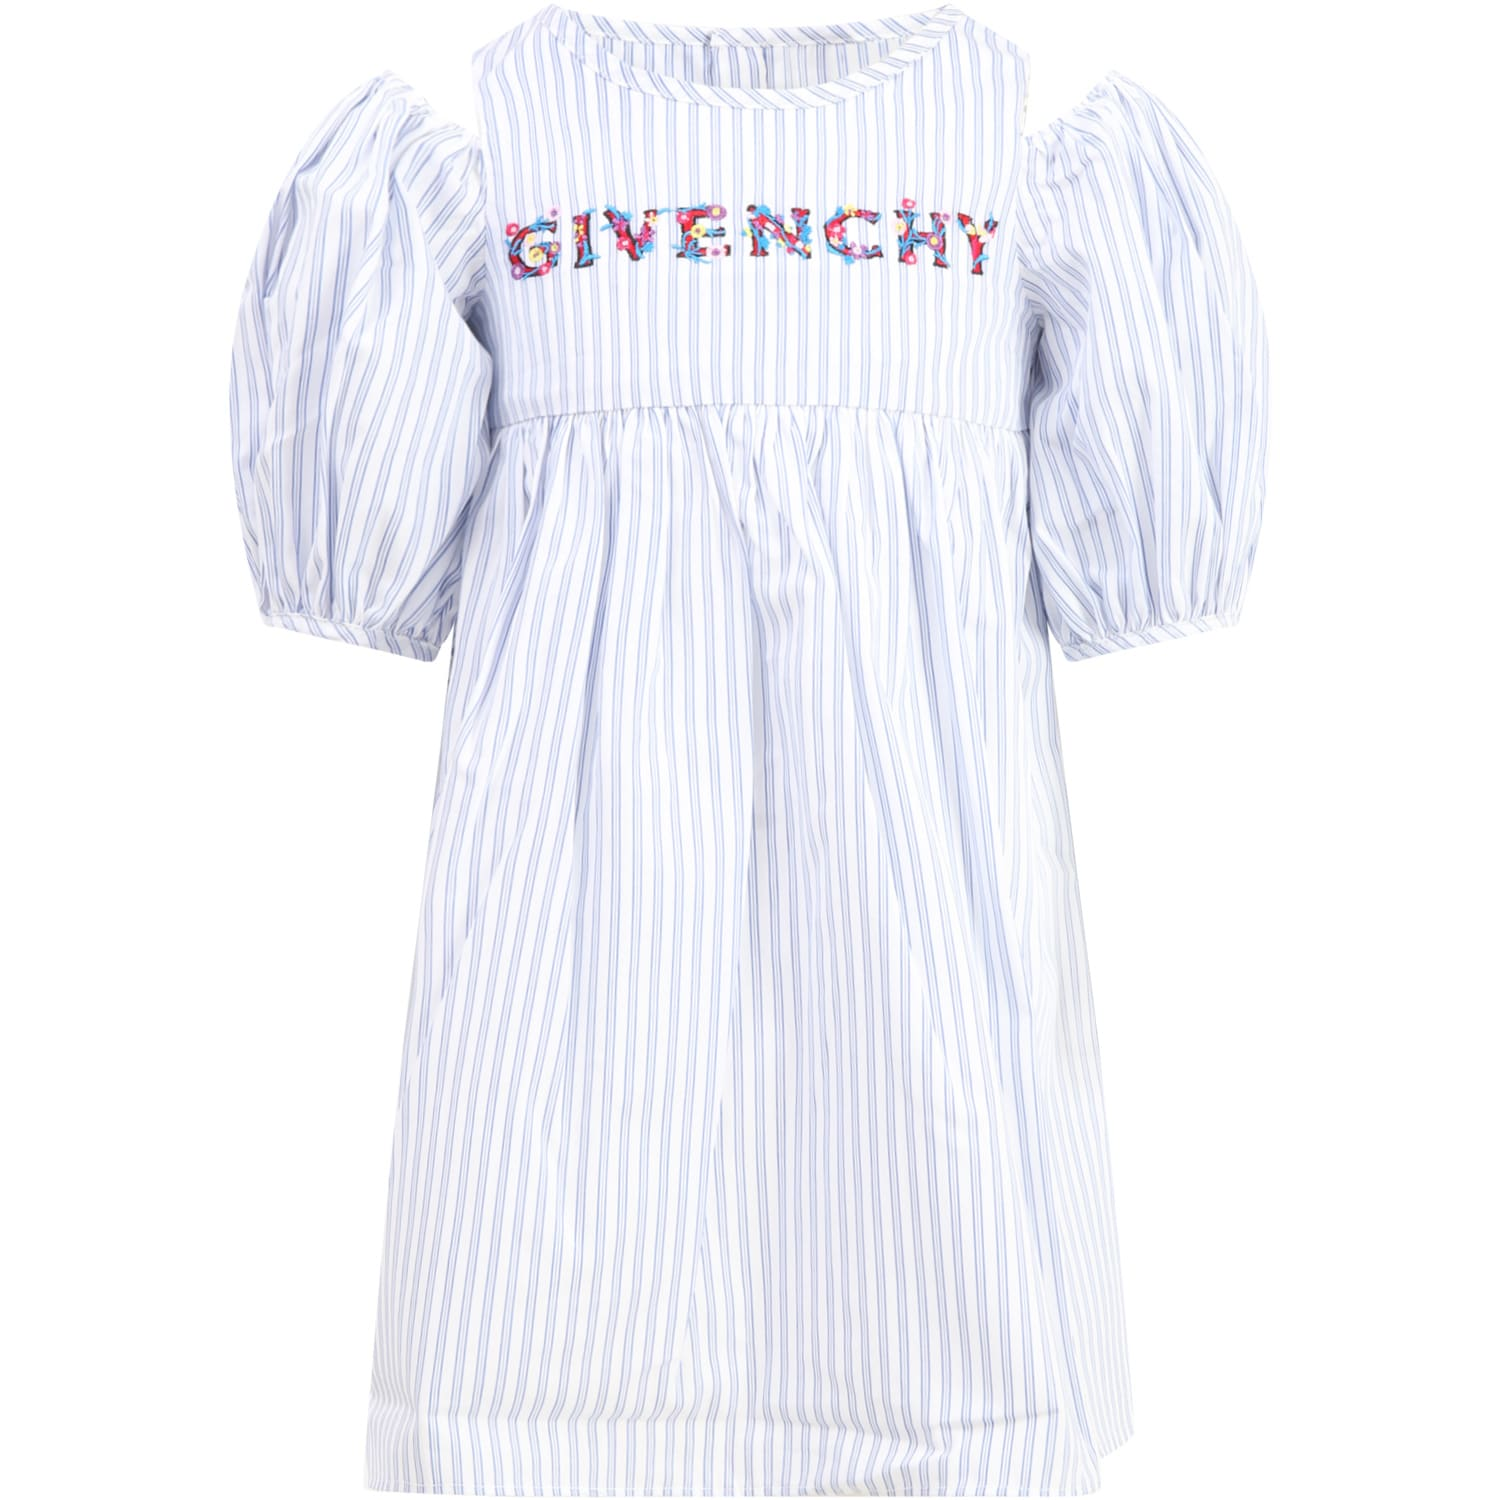 Givenchy MULTICOLOR DRESS FOR GIRL WITH COLORFUL LOGO